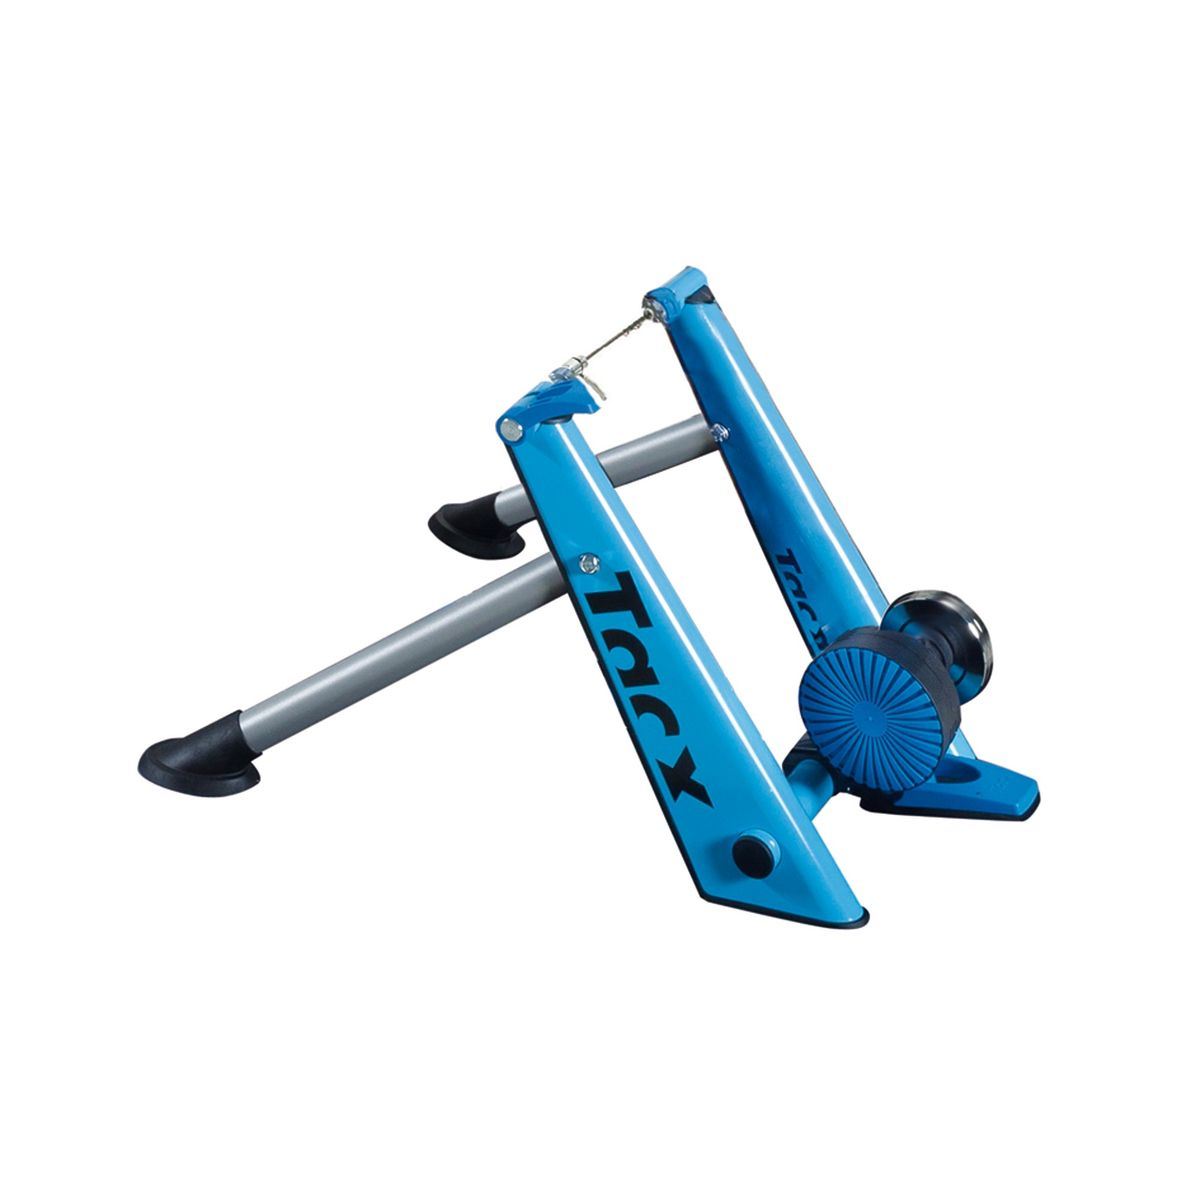 Blue Twist T2675 turbo trainer